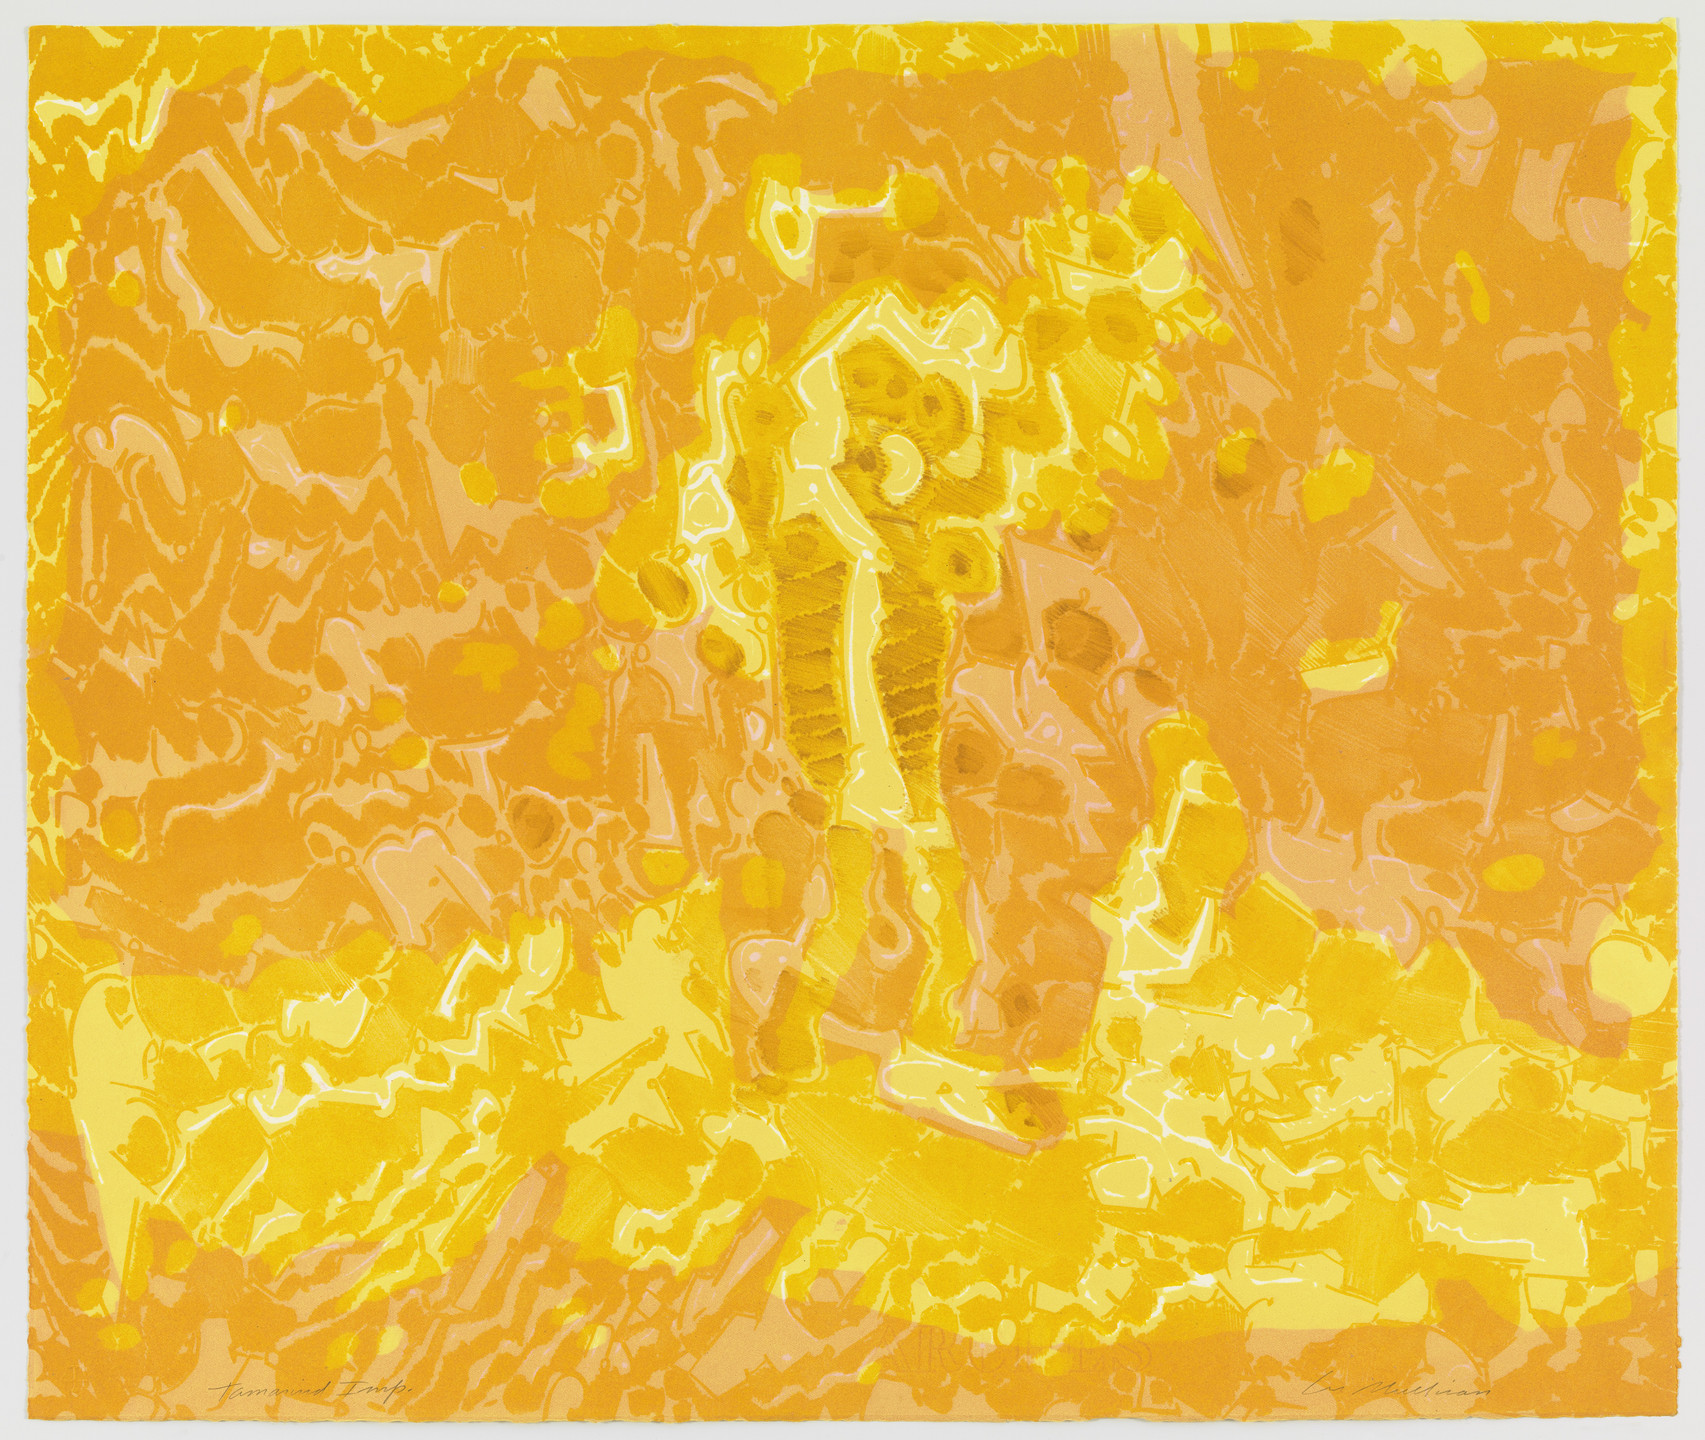 Lee Mullican. Meditations on a Landscape. 1964